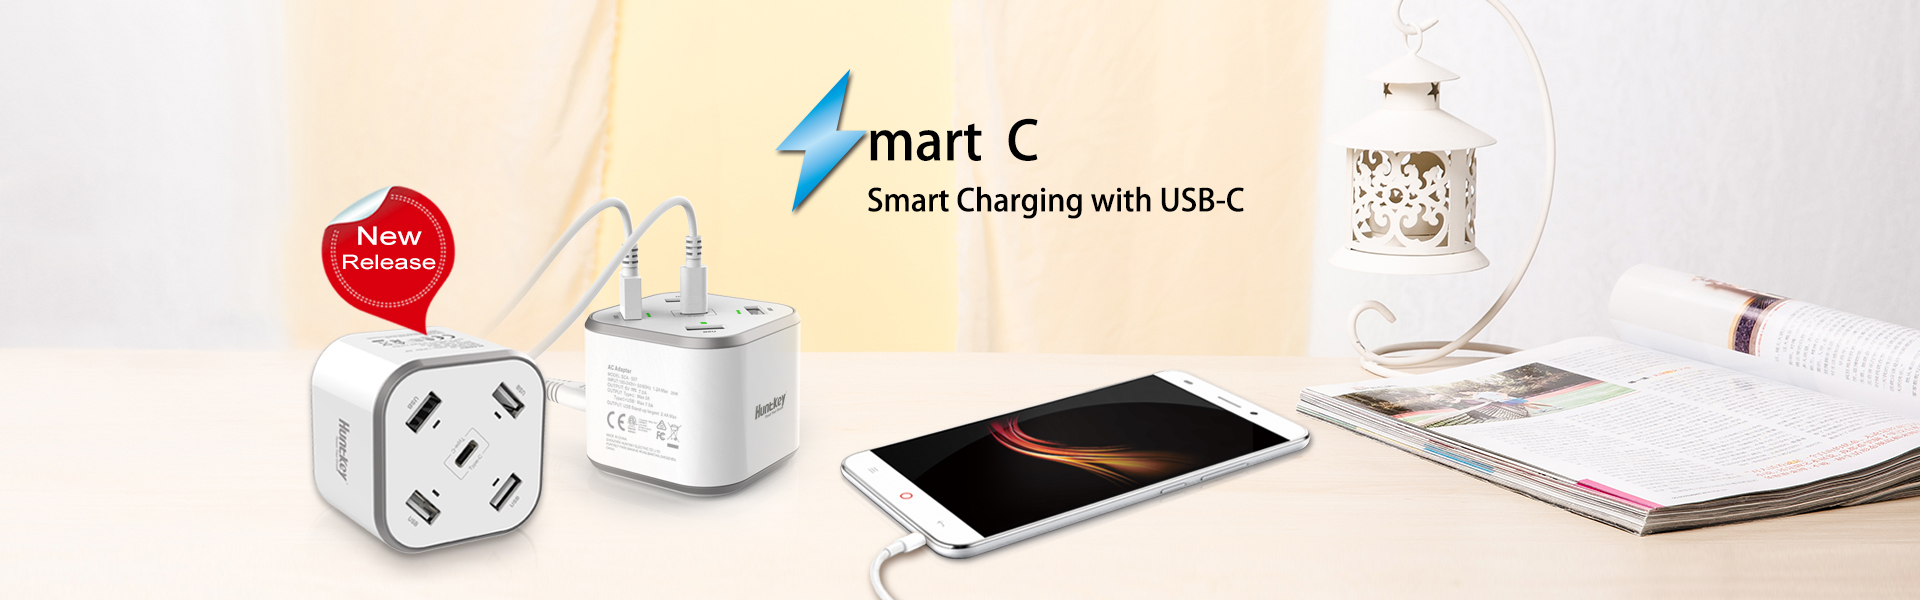 Smart Charging with USB-C